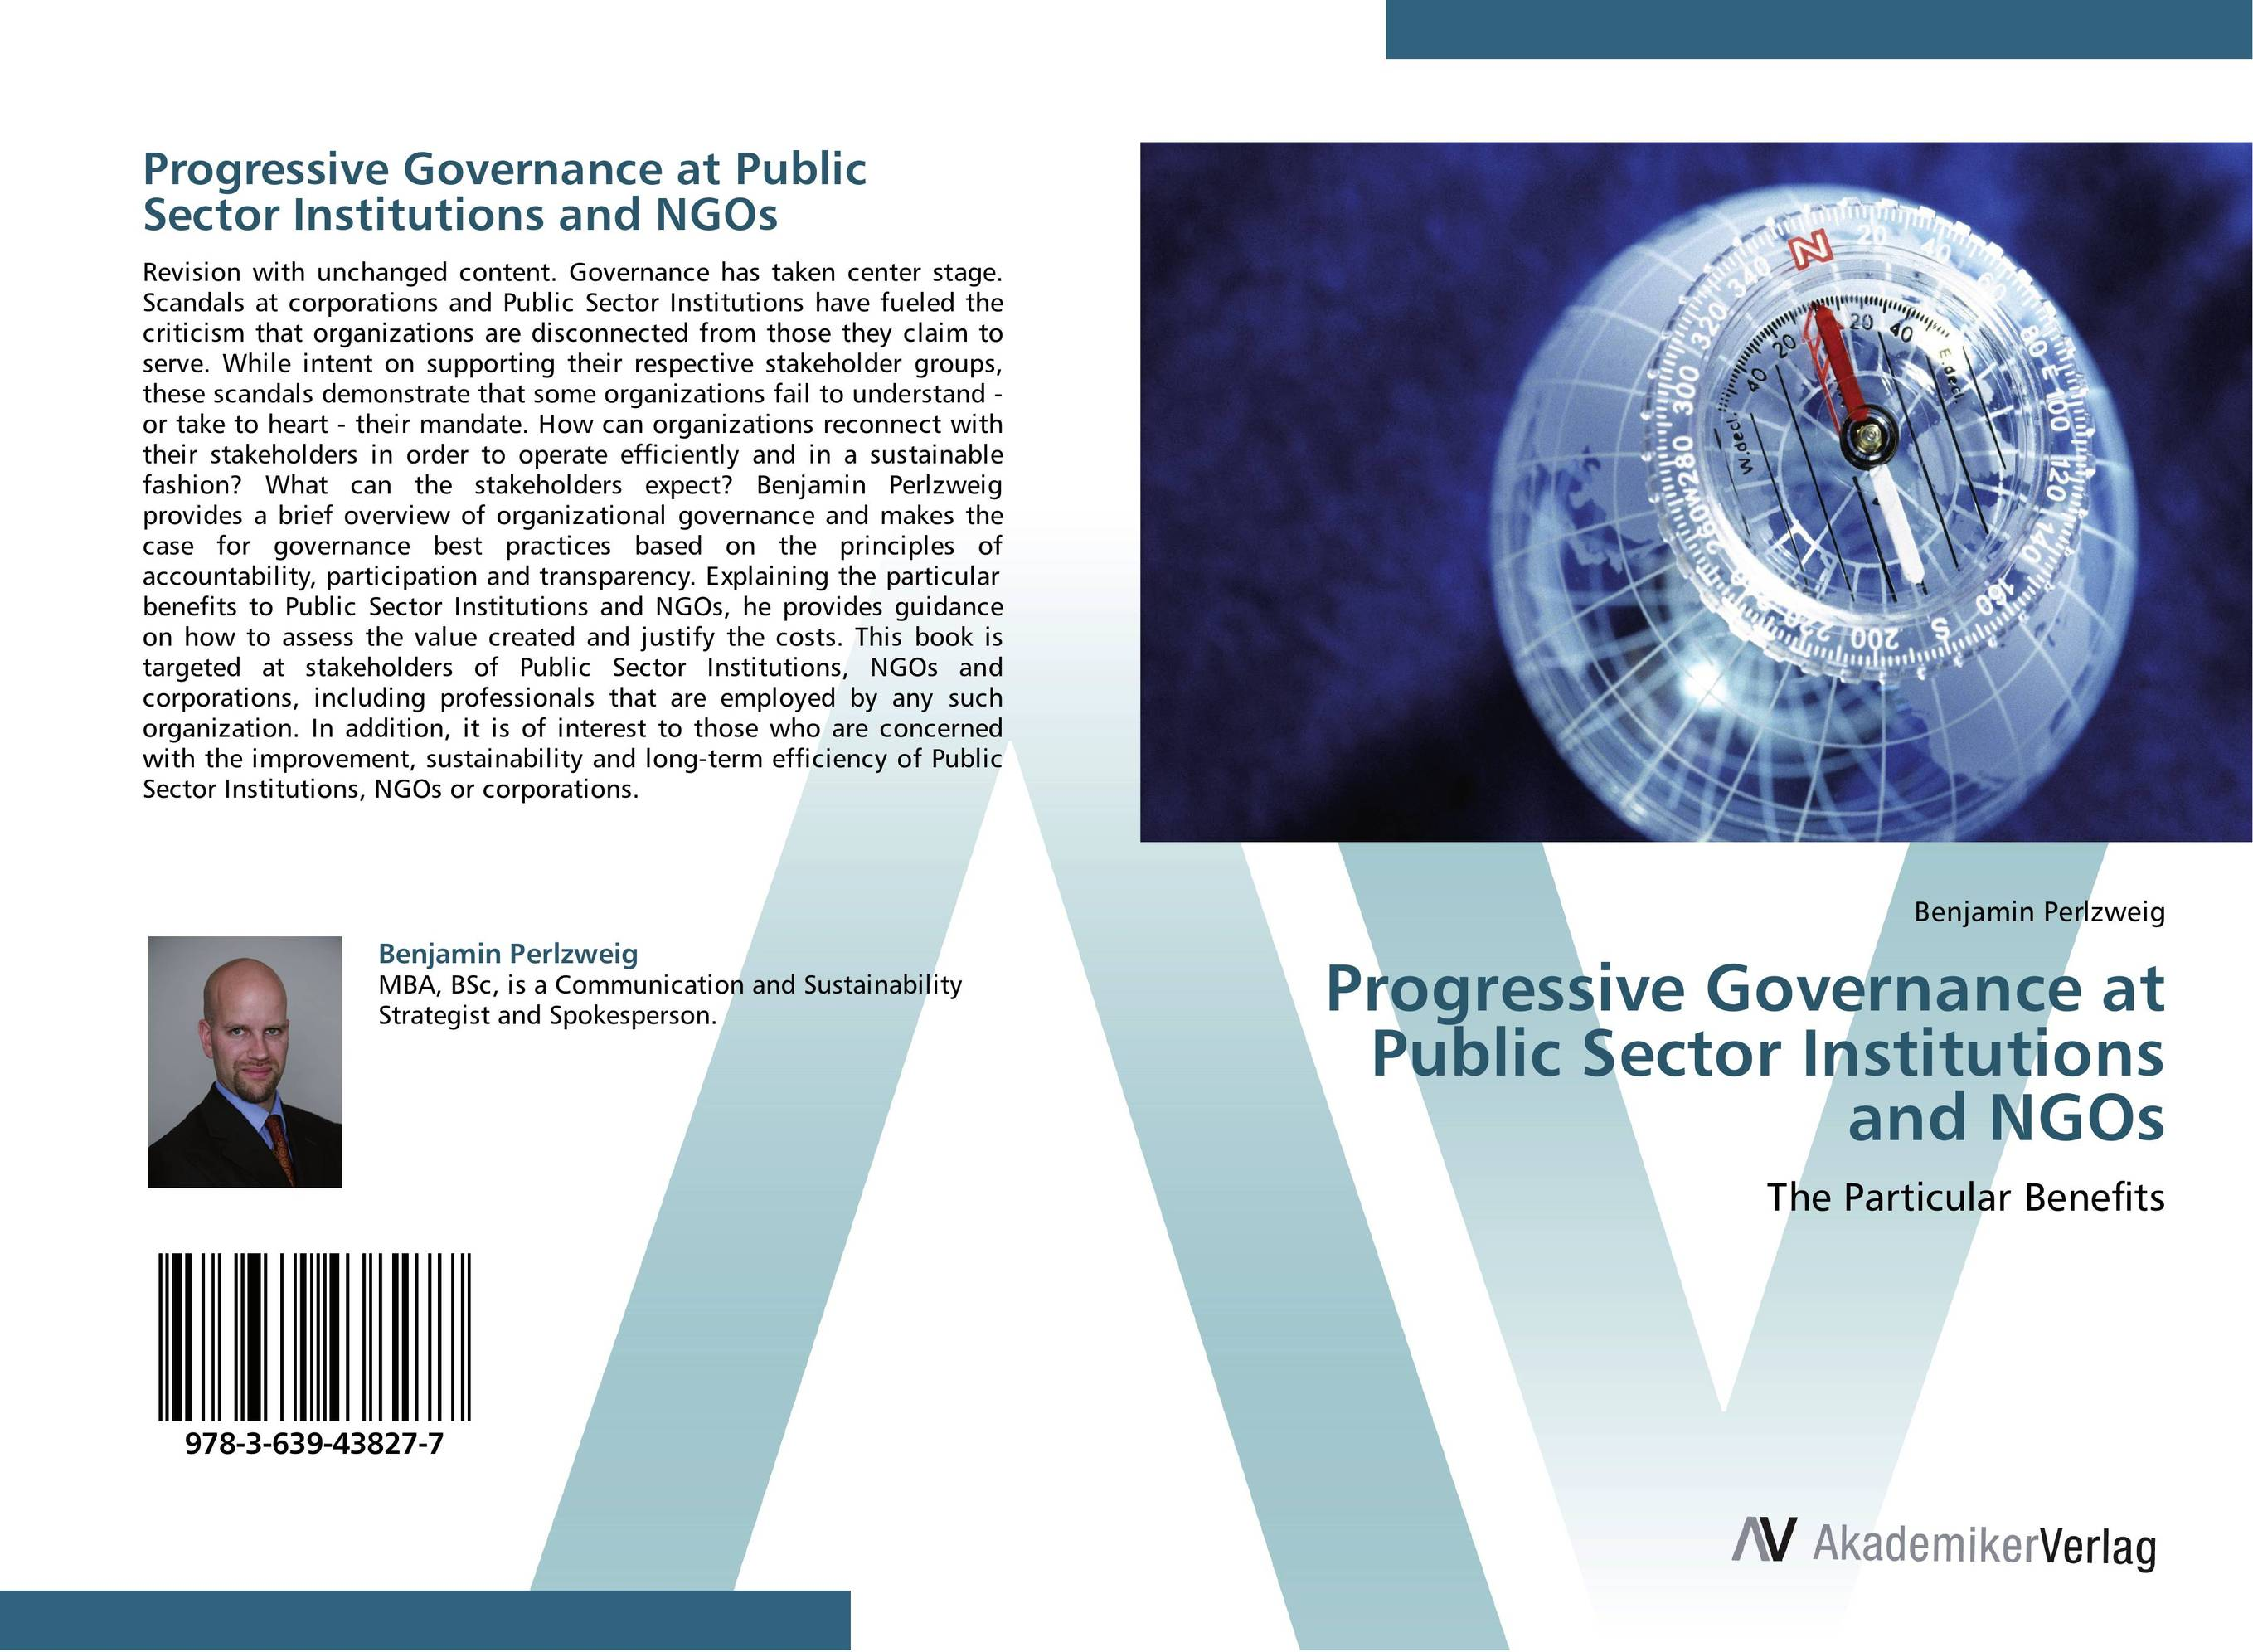 Progressive Governance at Public Sector Institutions and NGOs ngos